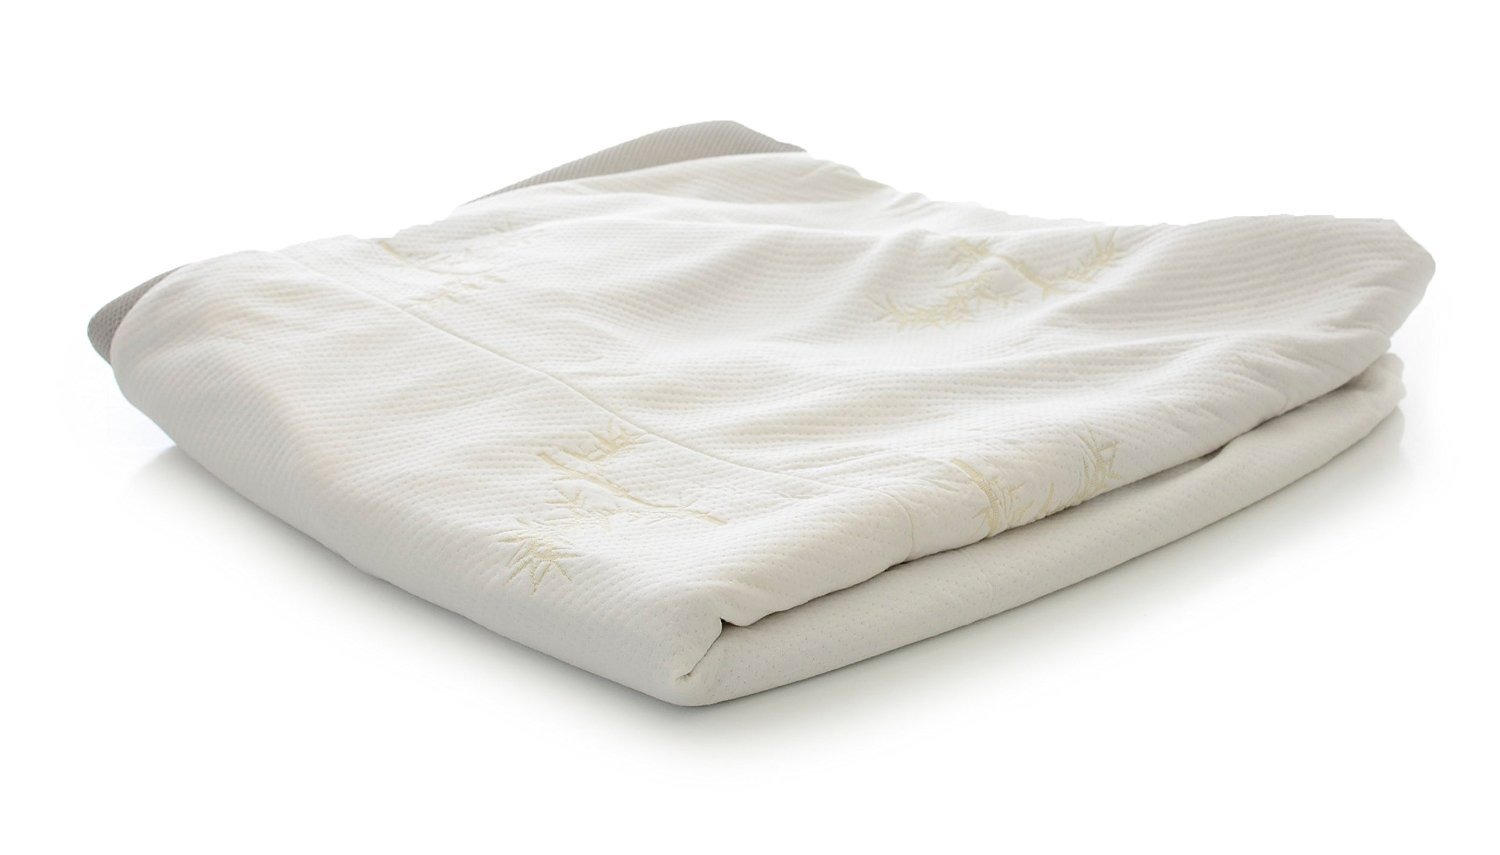 Milliard Replacement Cover for 4-Inch Tri-fold Mattress - Single 25 inches Ultra Soft by Milliard